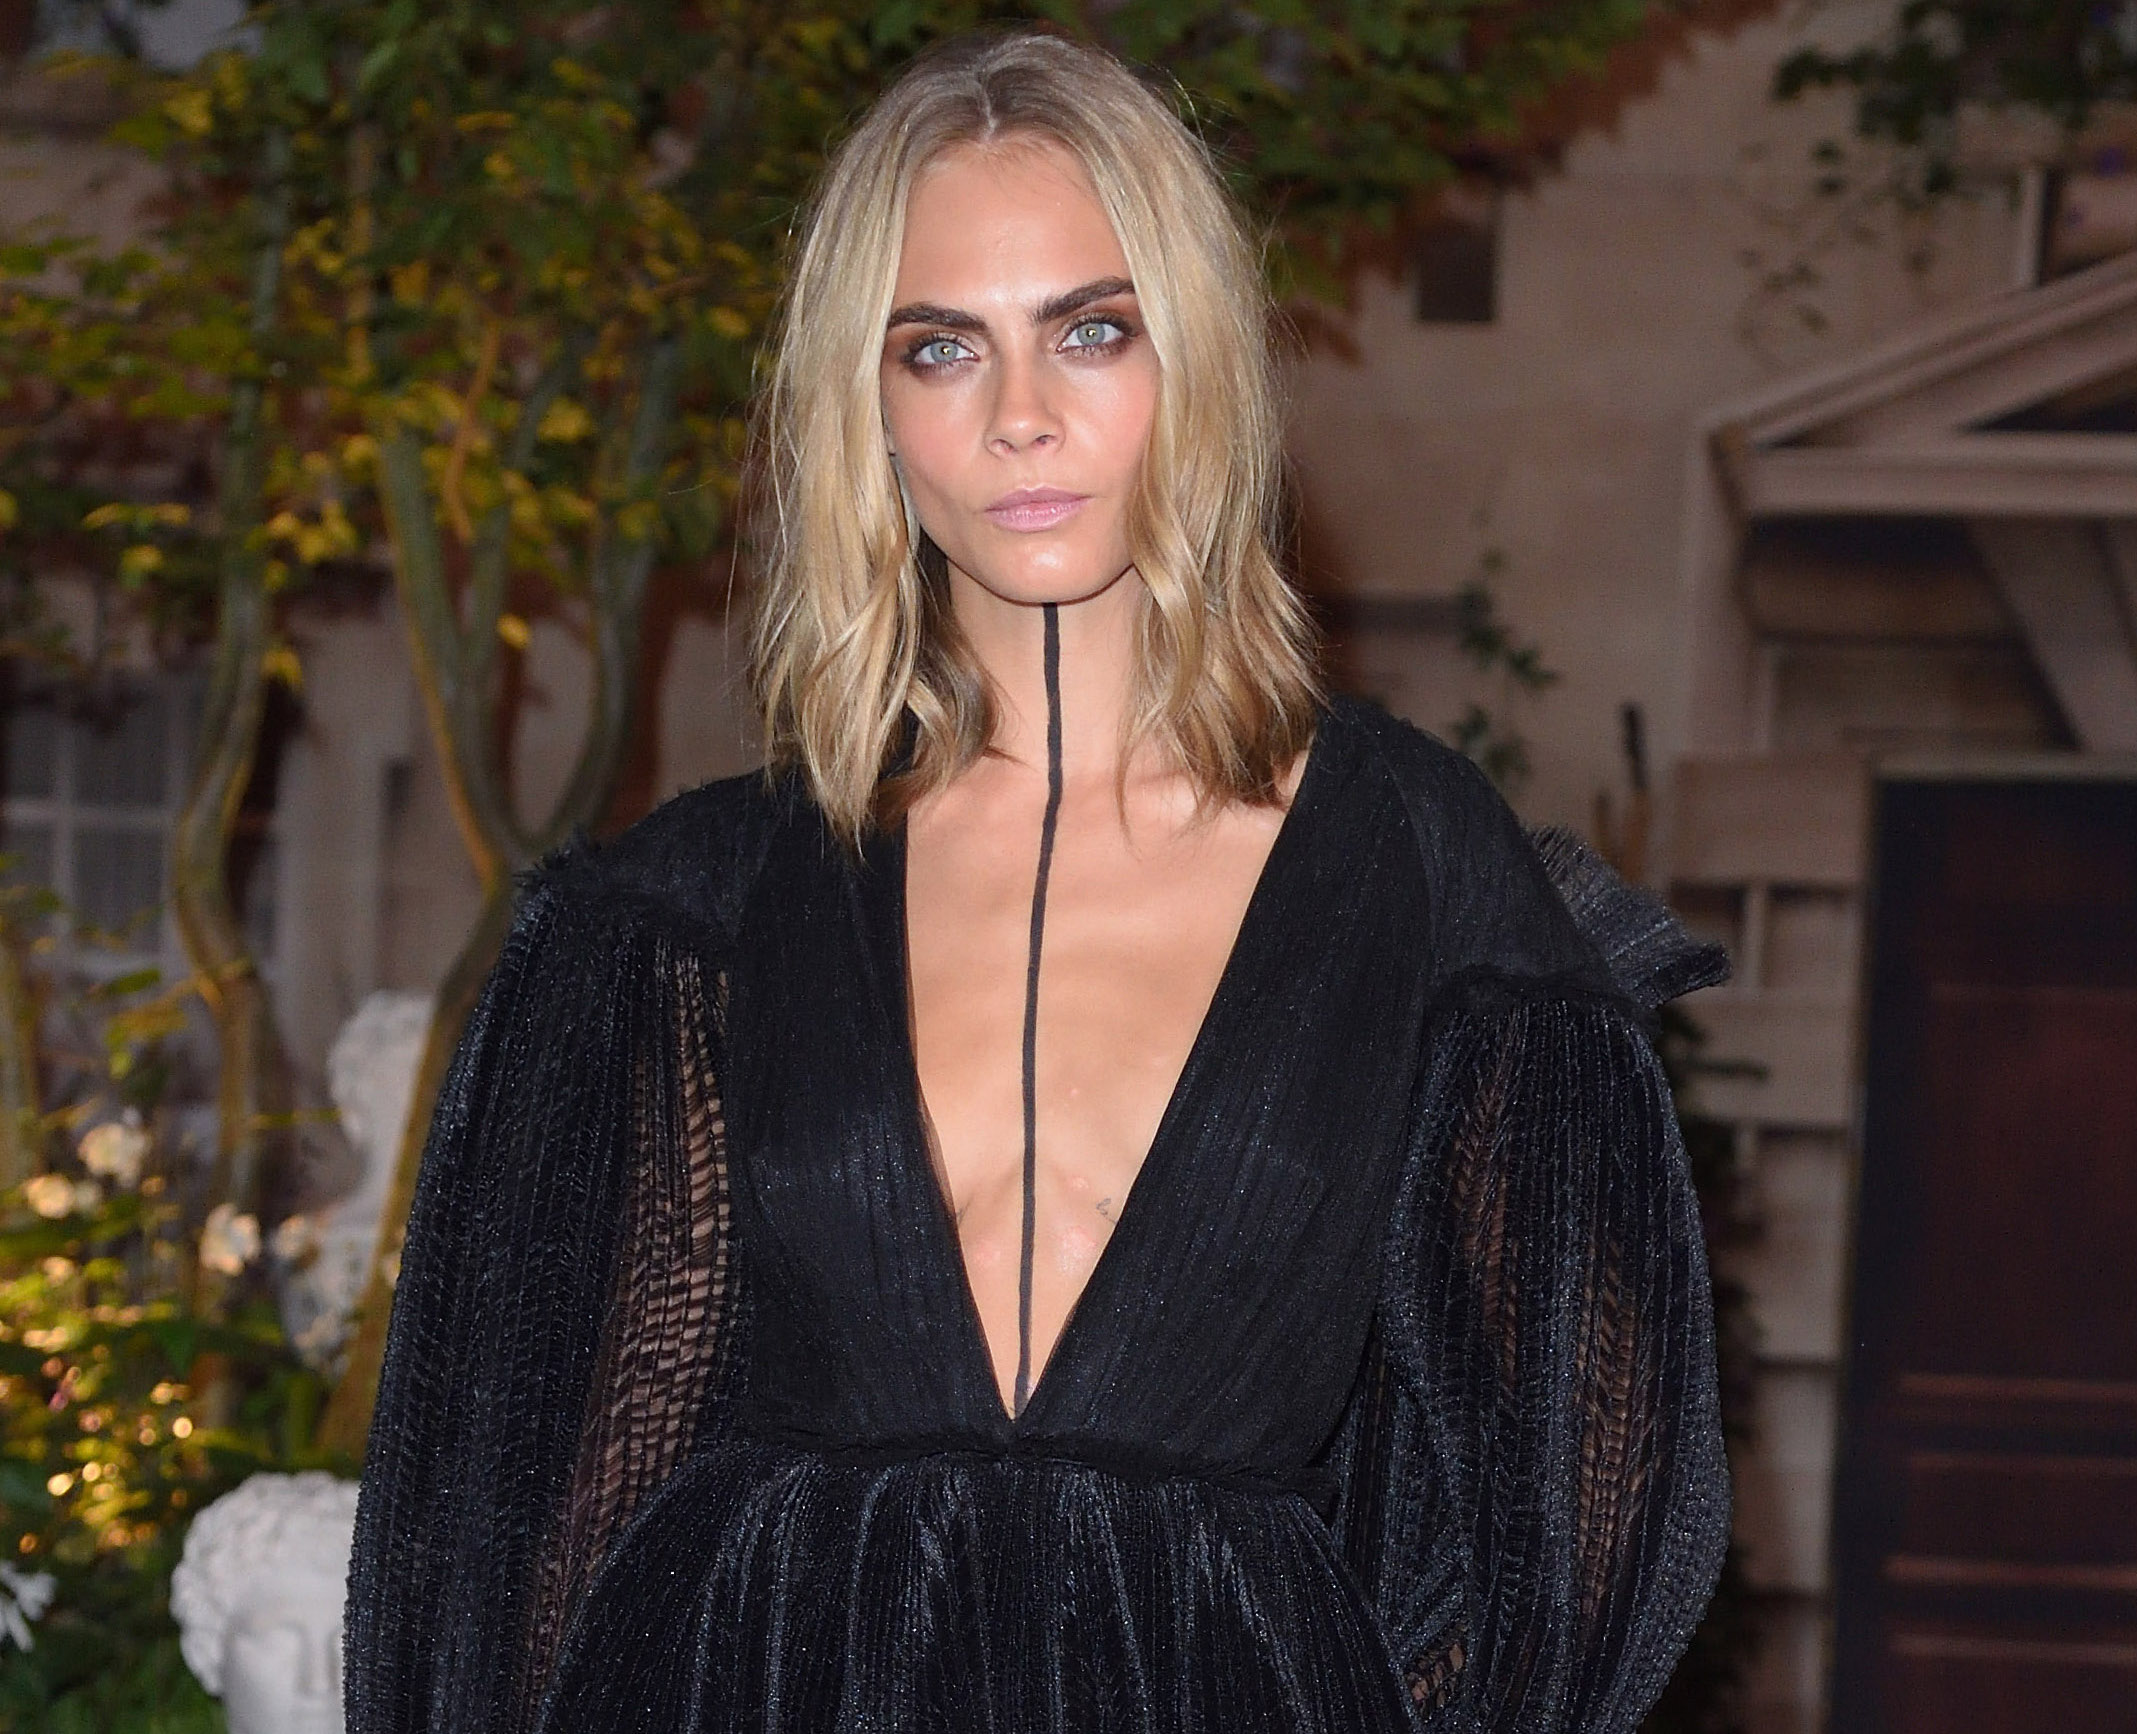 We're in love with the fact that Cara Delevingne went grandpa chic with a dark twist